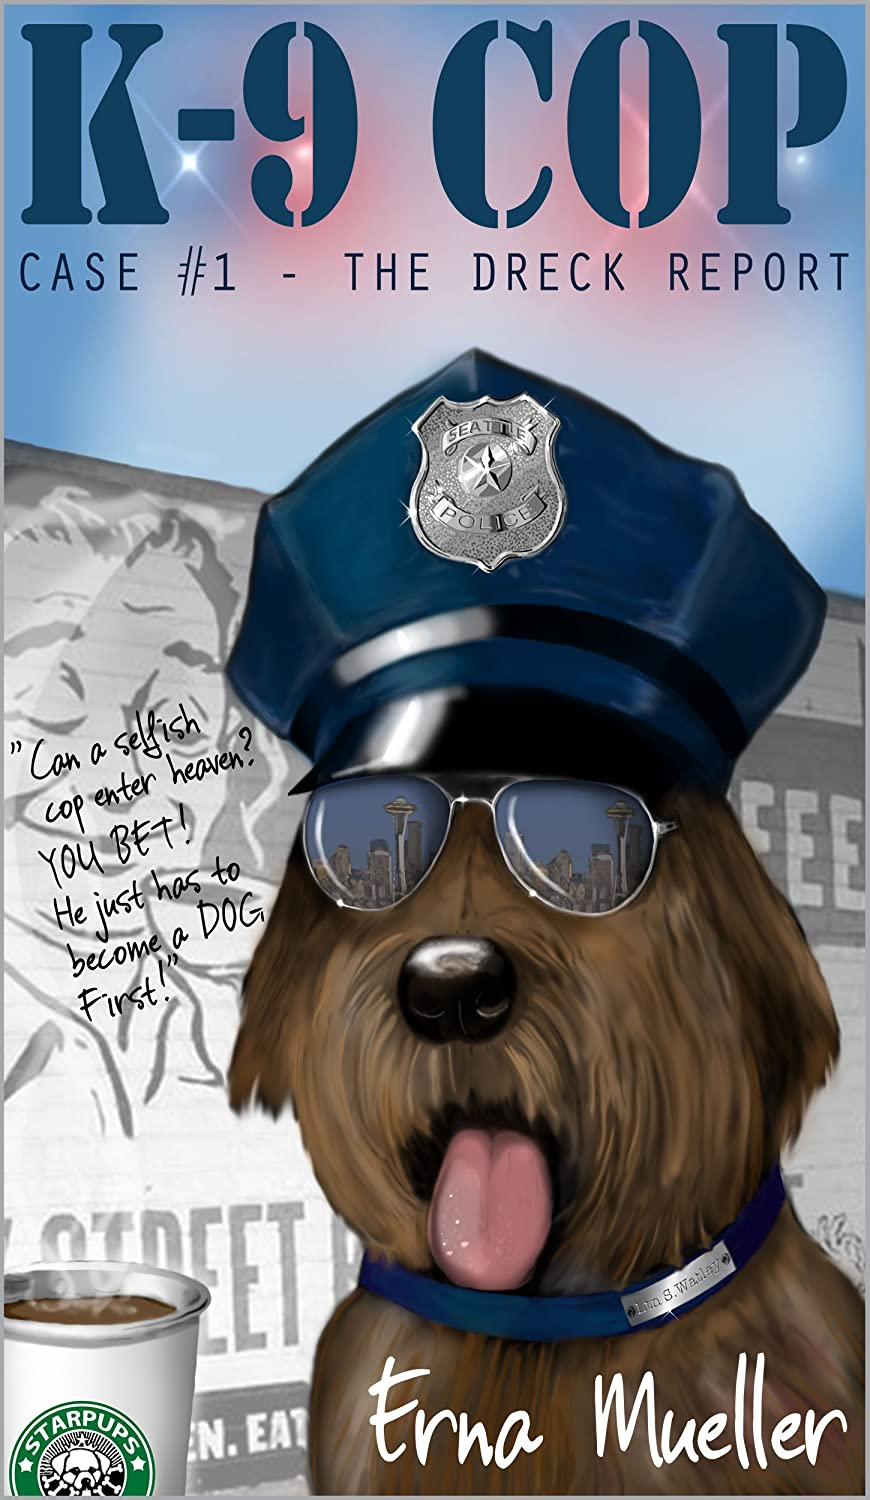 K-9 Cop: Case #1 The Dreck Report Book Cover